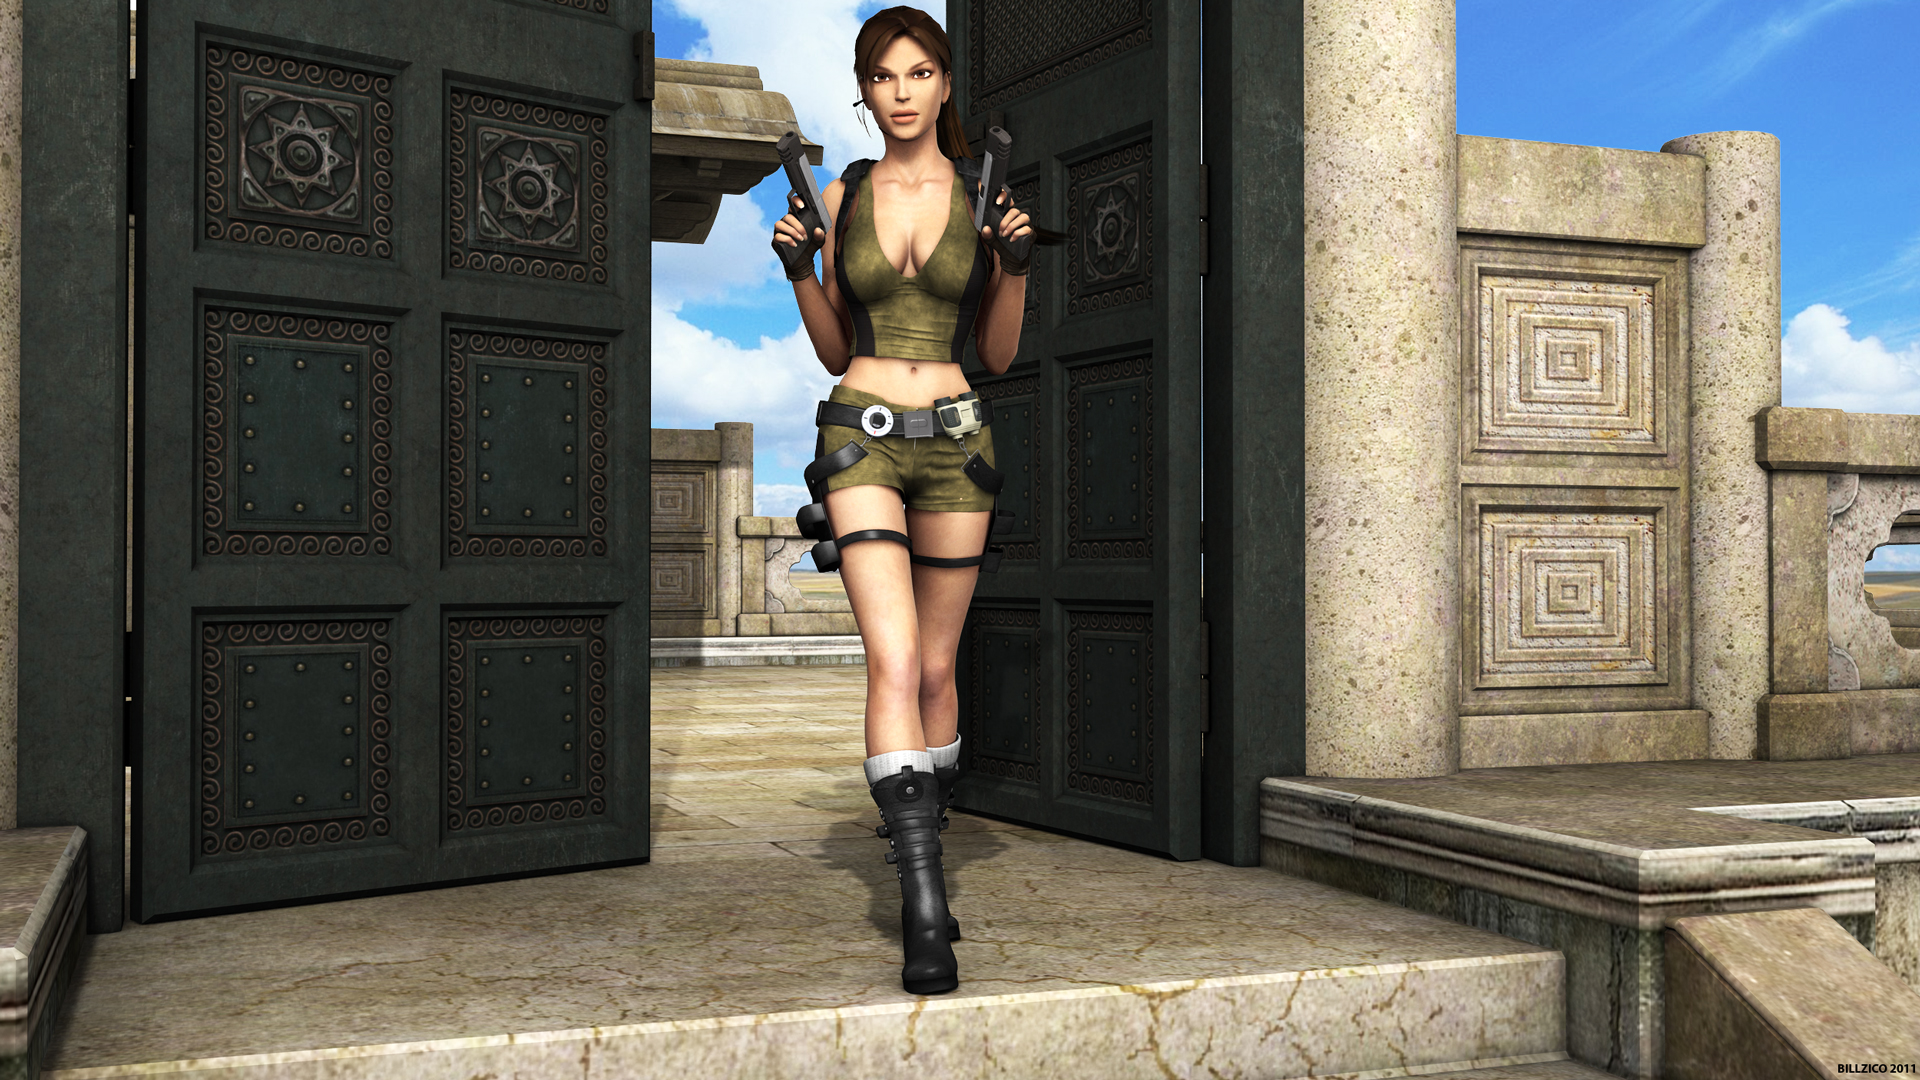 1920x1080 Lara Croft - Daz Studio 3D desktop PC and Mac wallpaper